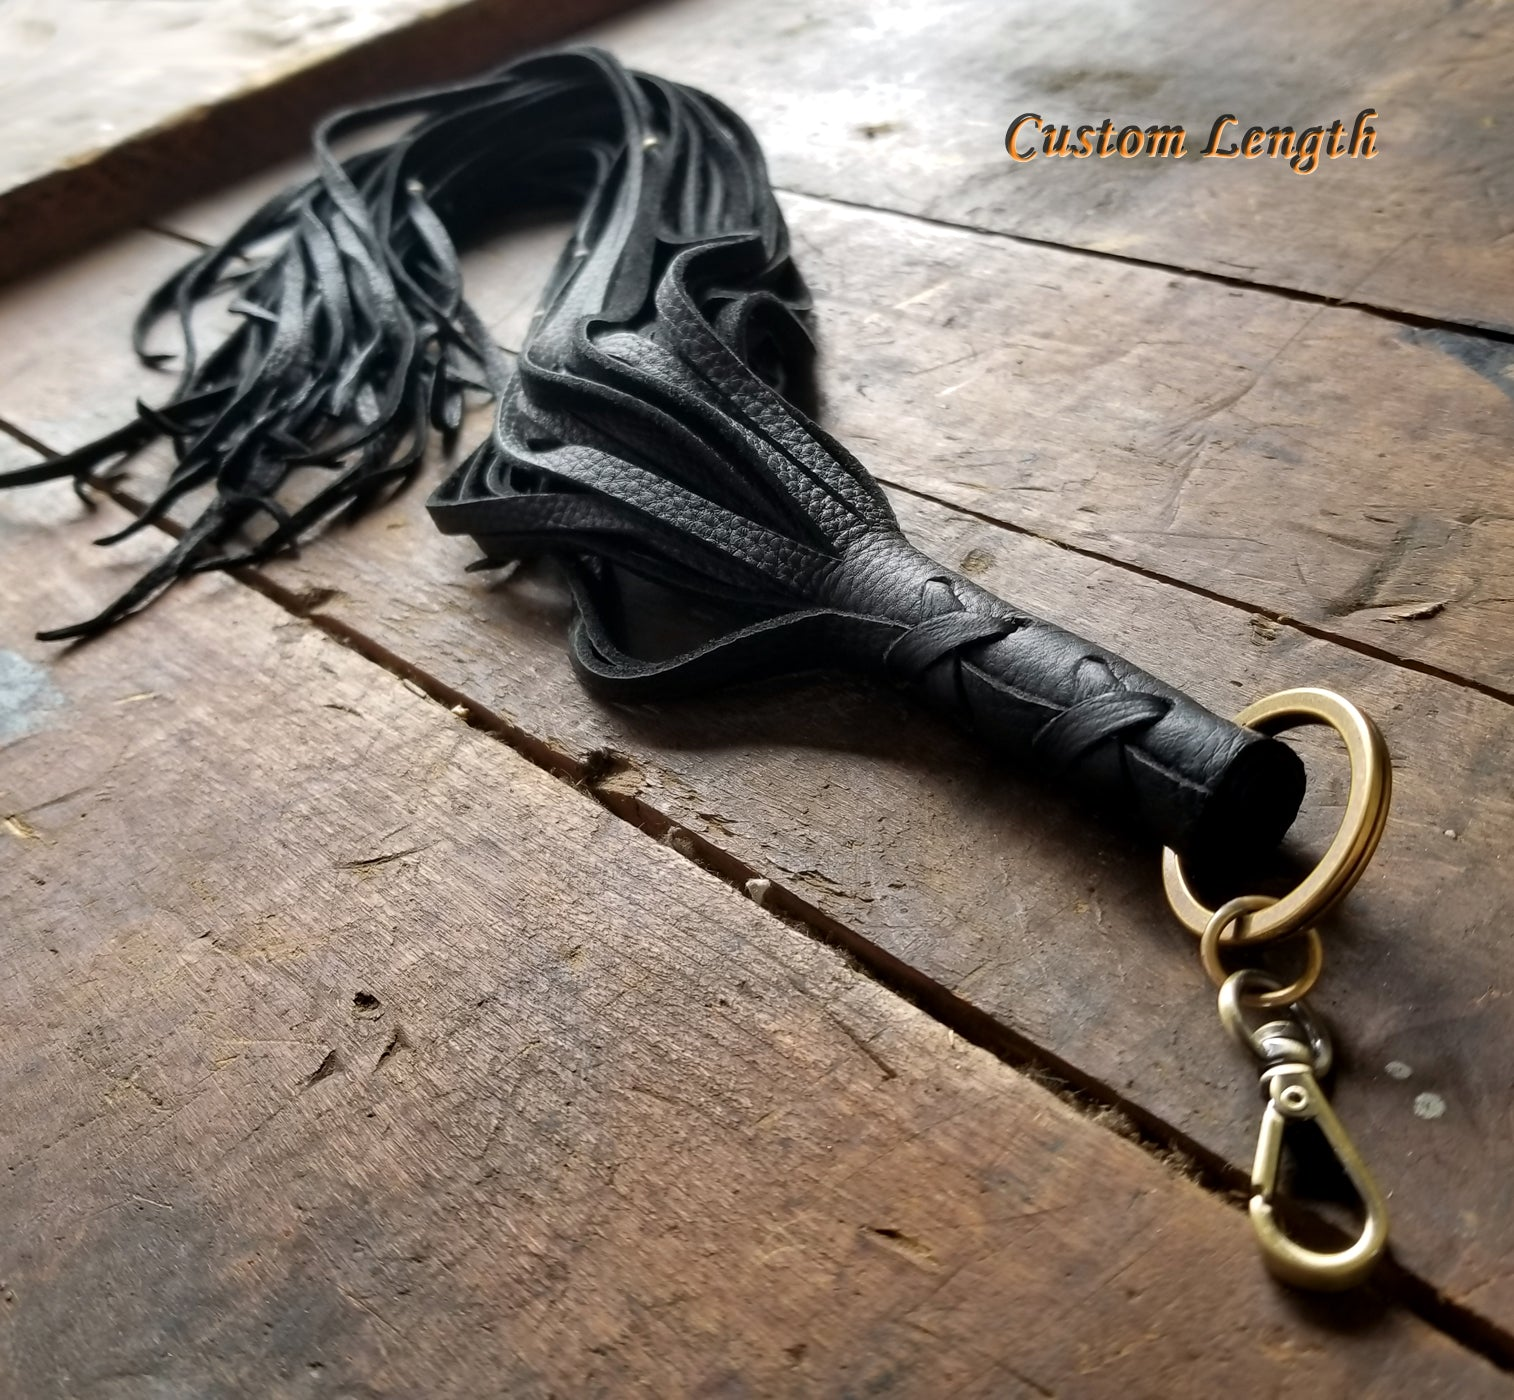 Custom Length Nala Leather Tassel Key Chain in black deerskin with antique brass beads and clip